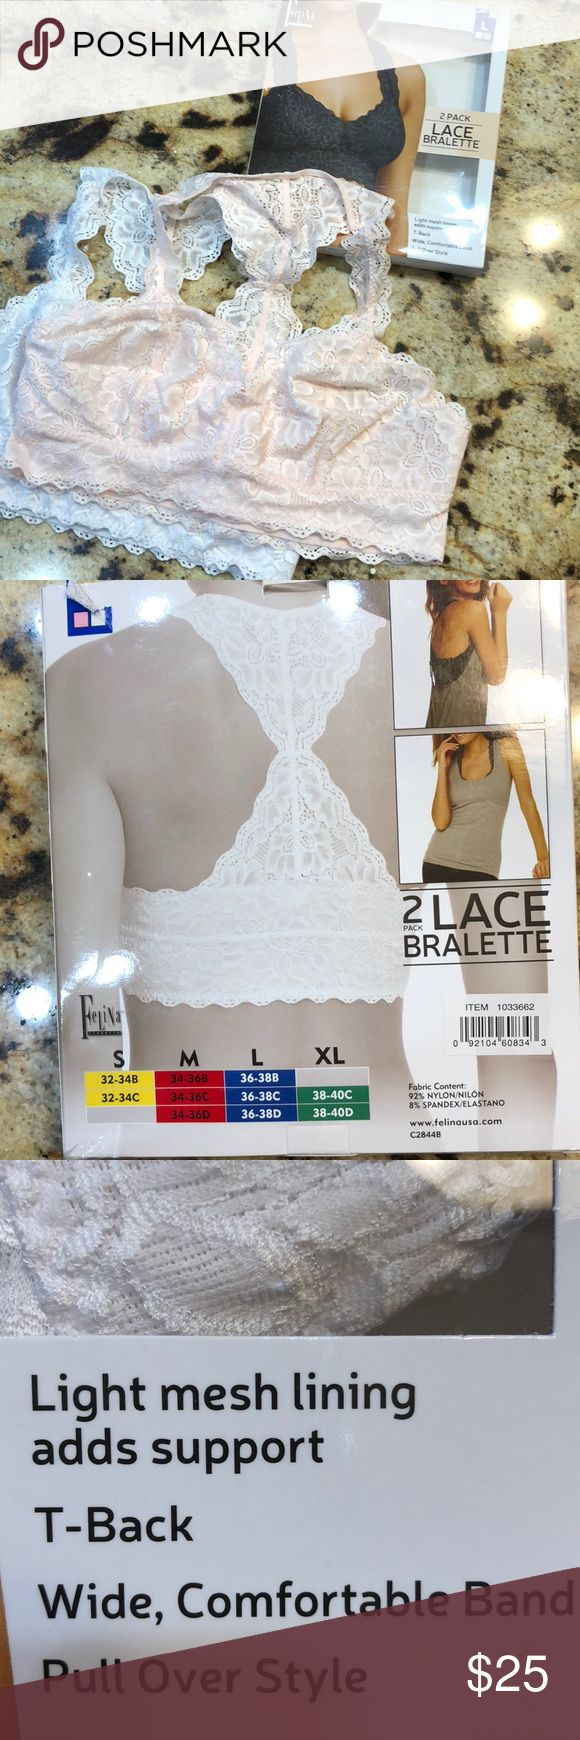 2 lace racerback bralettes like new White and blush pink in box. Size large please see bra size chart. Bundle and save on shipping as I discount bundles felina Intimates & Sleepwear Bras